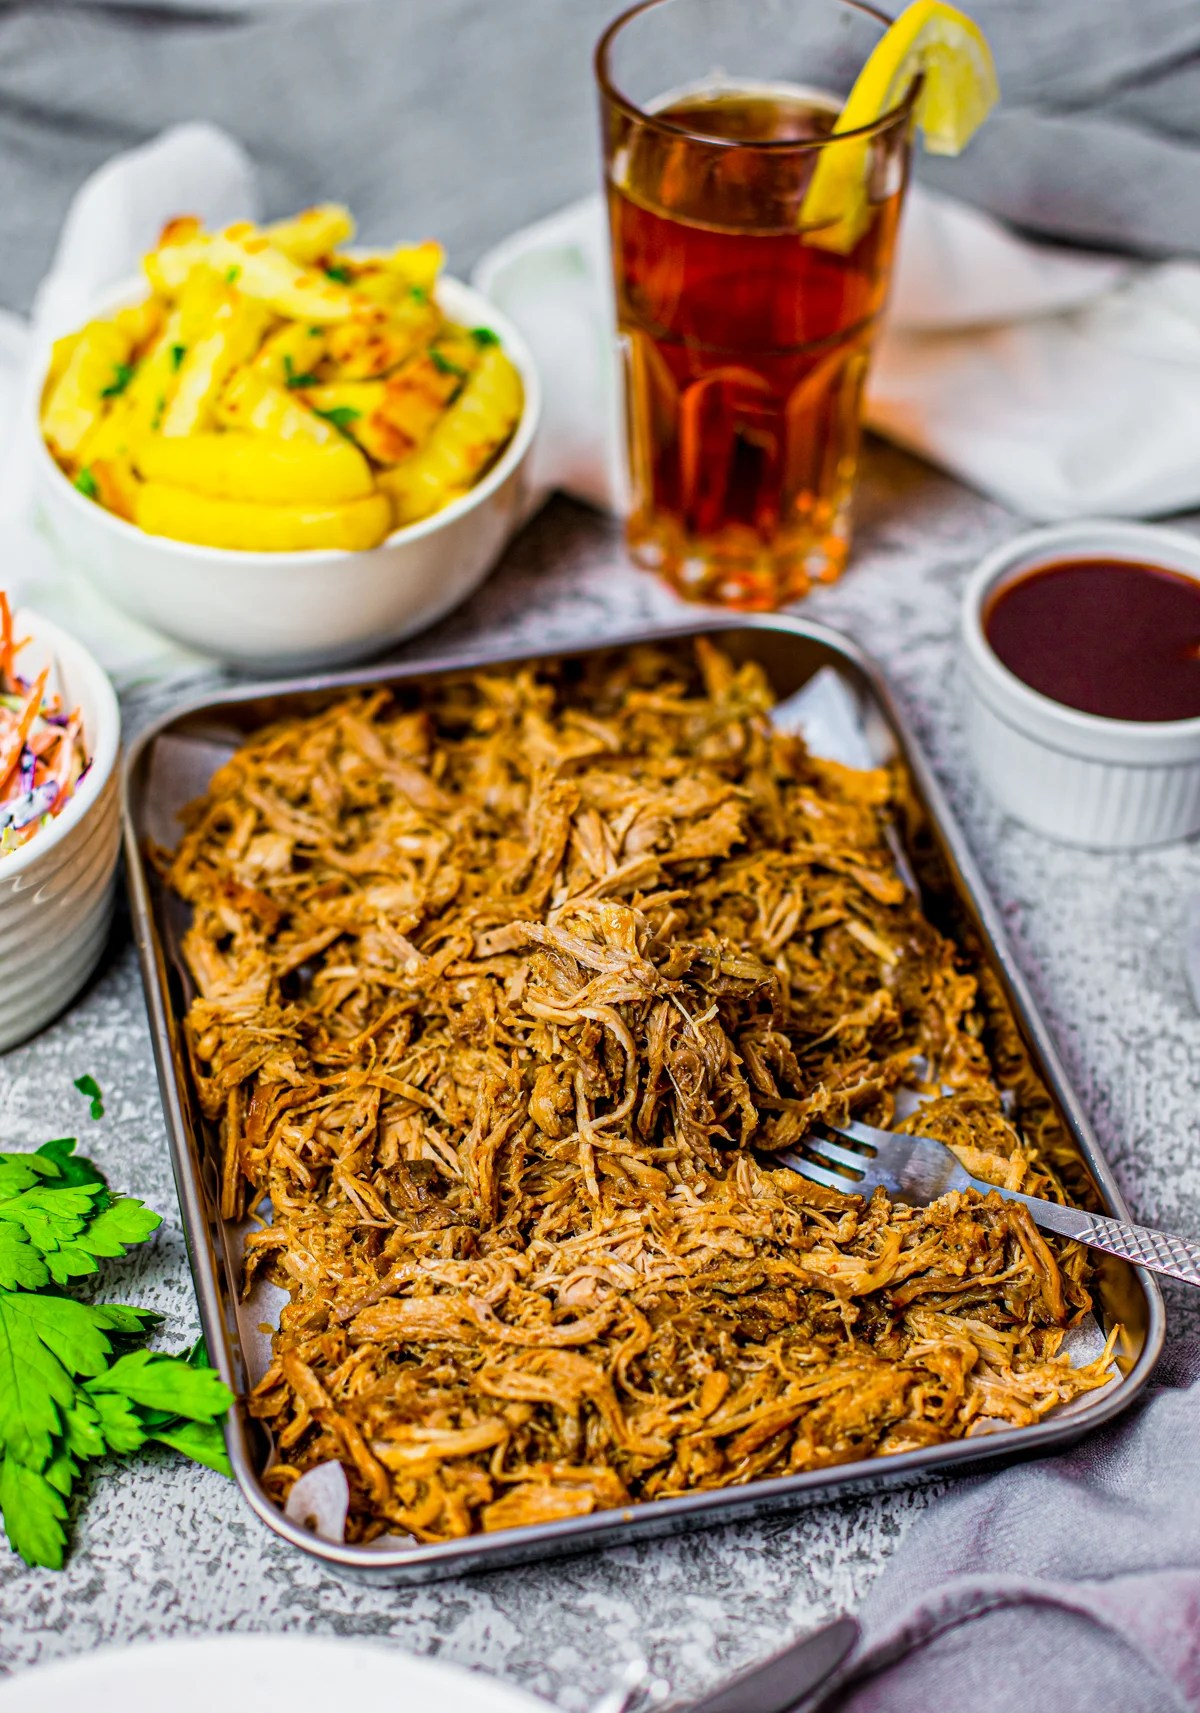 Crock Pot Pulled Pork on tray with form and French fries in bowl